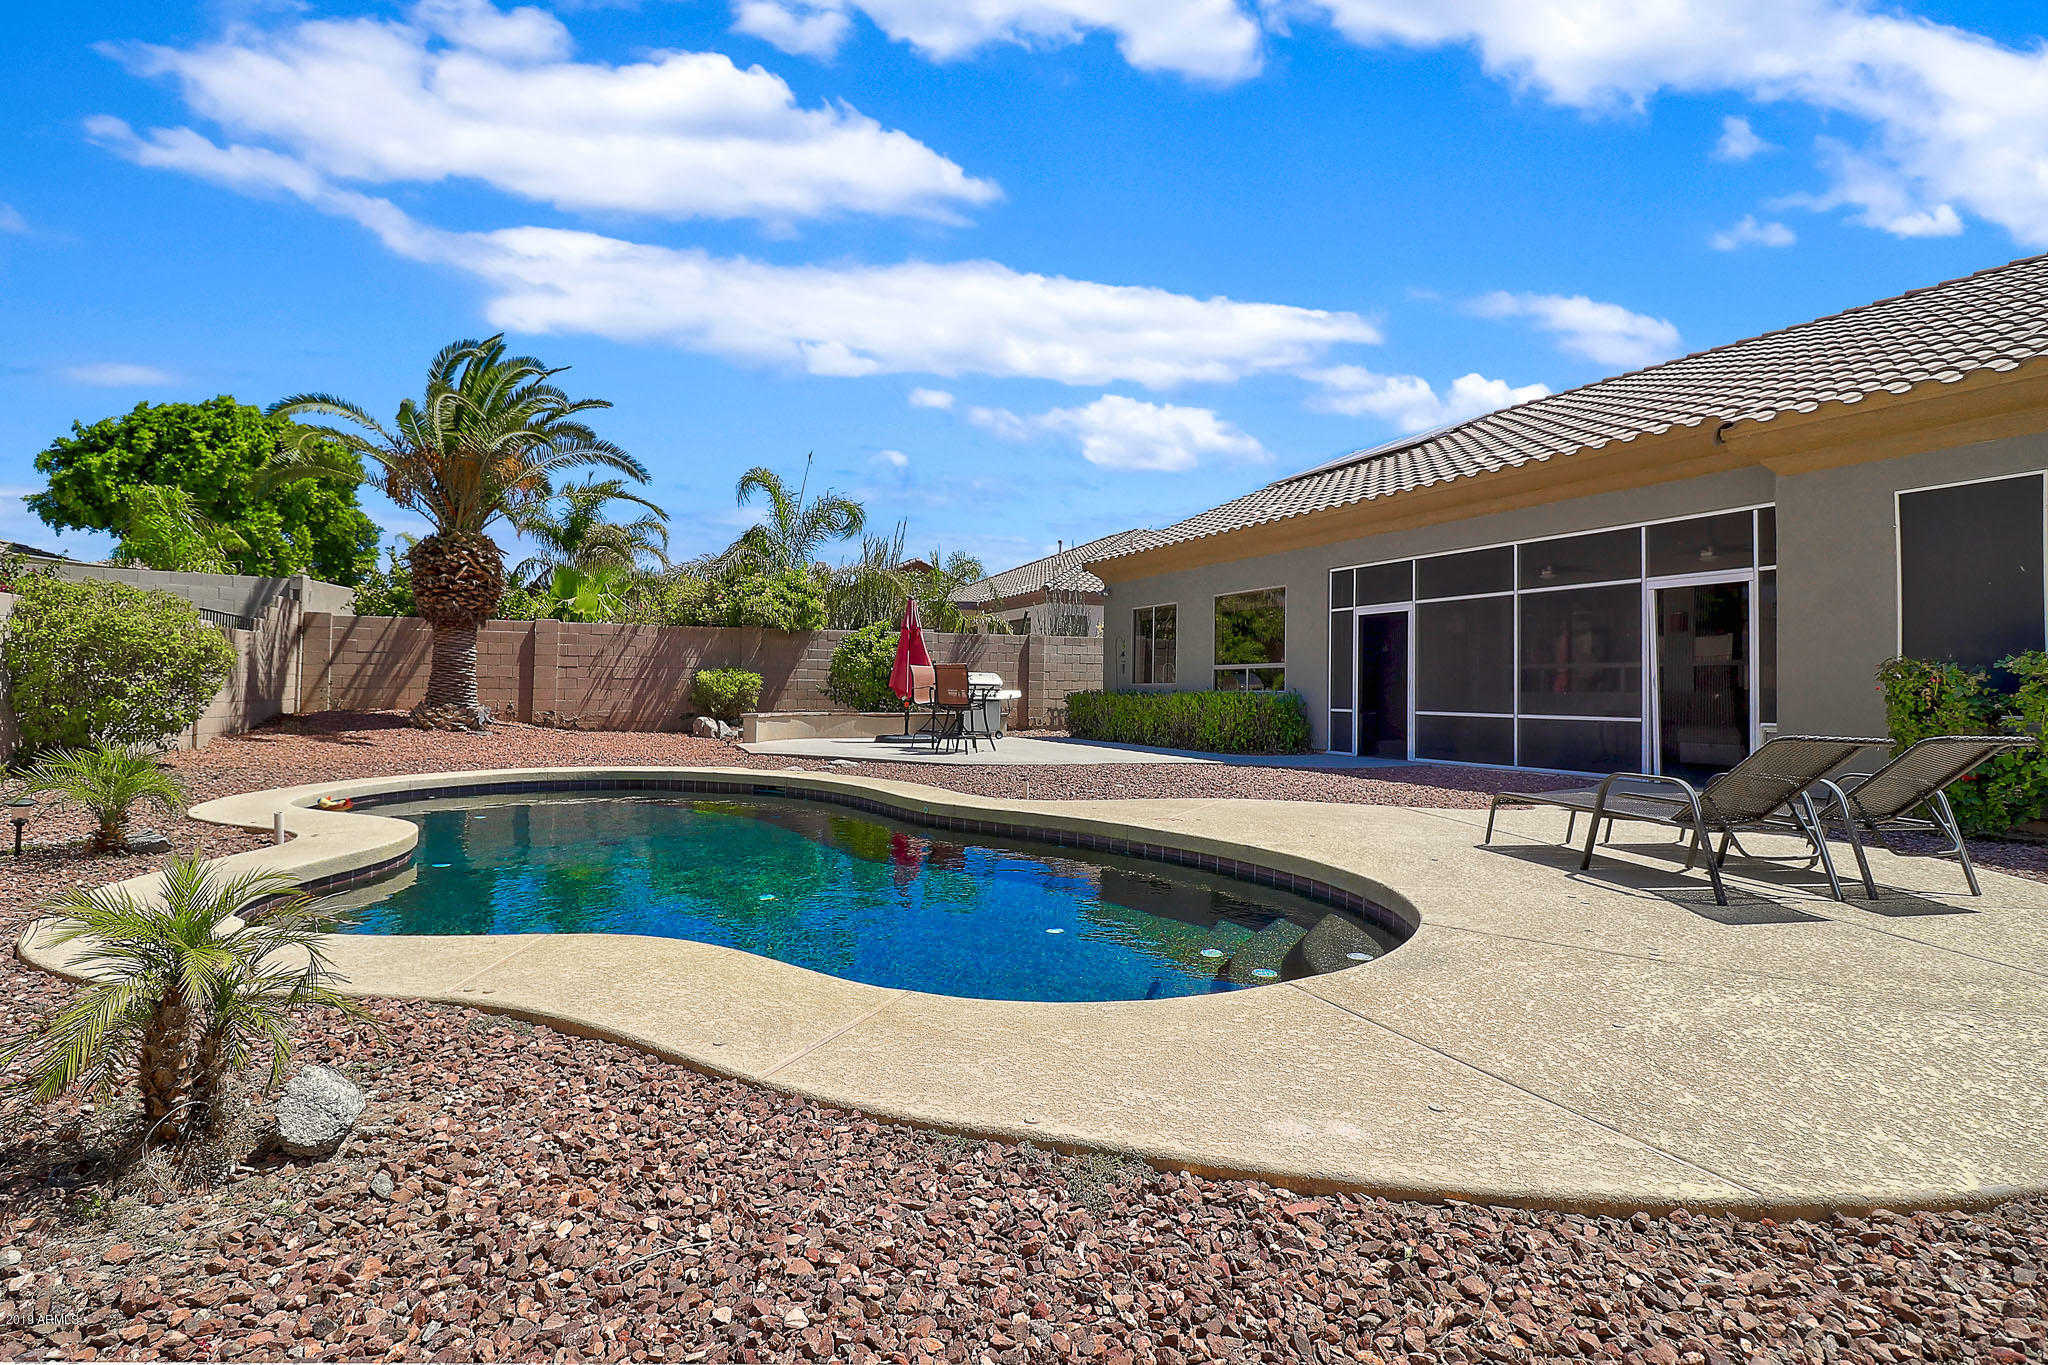 $379,000 - 3Br/2Ba - Home for Sale in Estrella Parcel 34, Goodyear